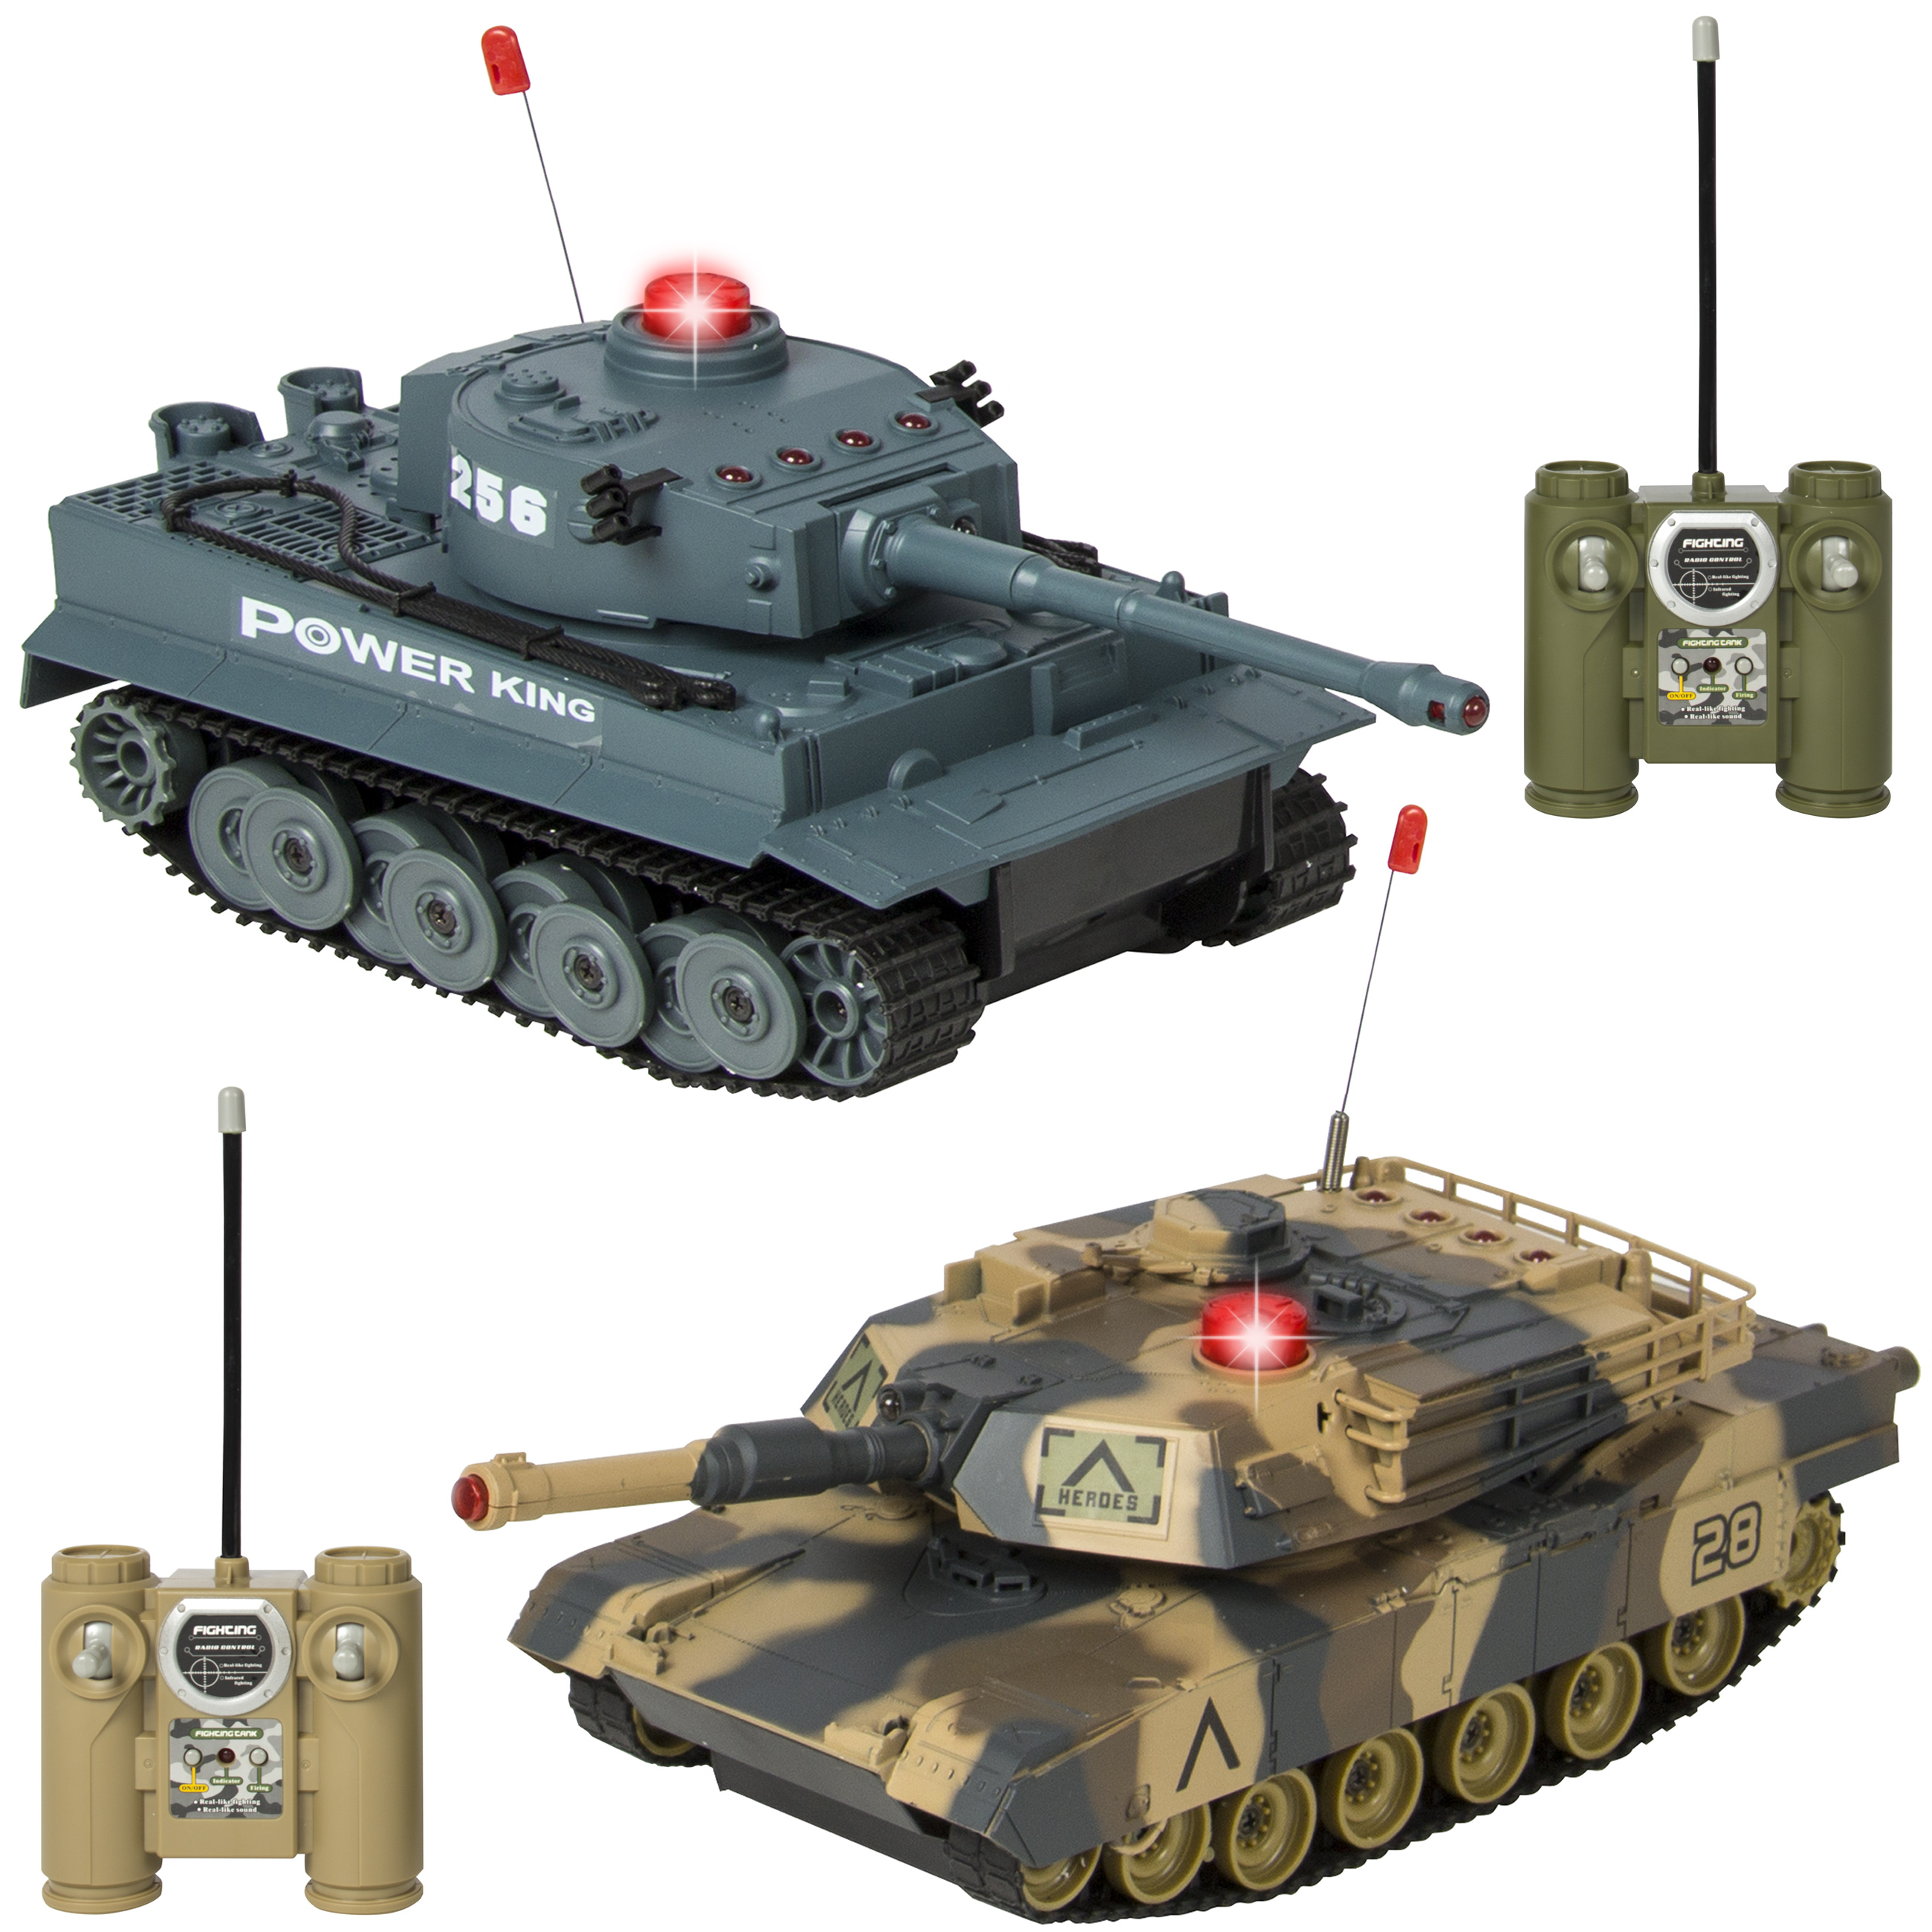 Best Choice Products RC Remote Control Battling Tanks Set of 2 Full Size Infrared